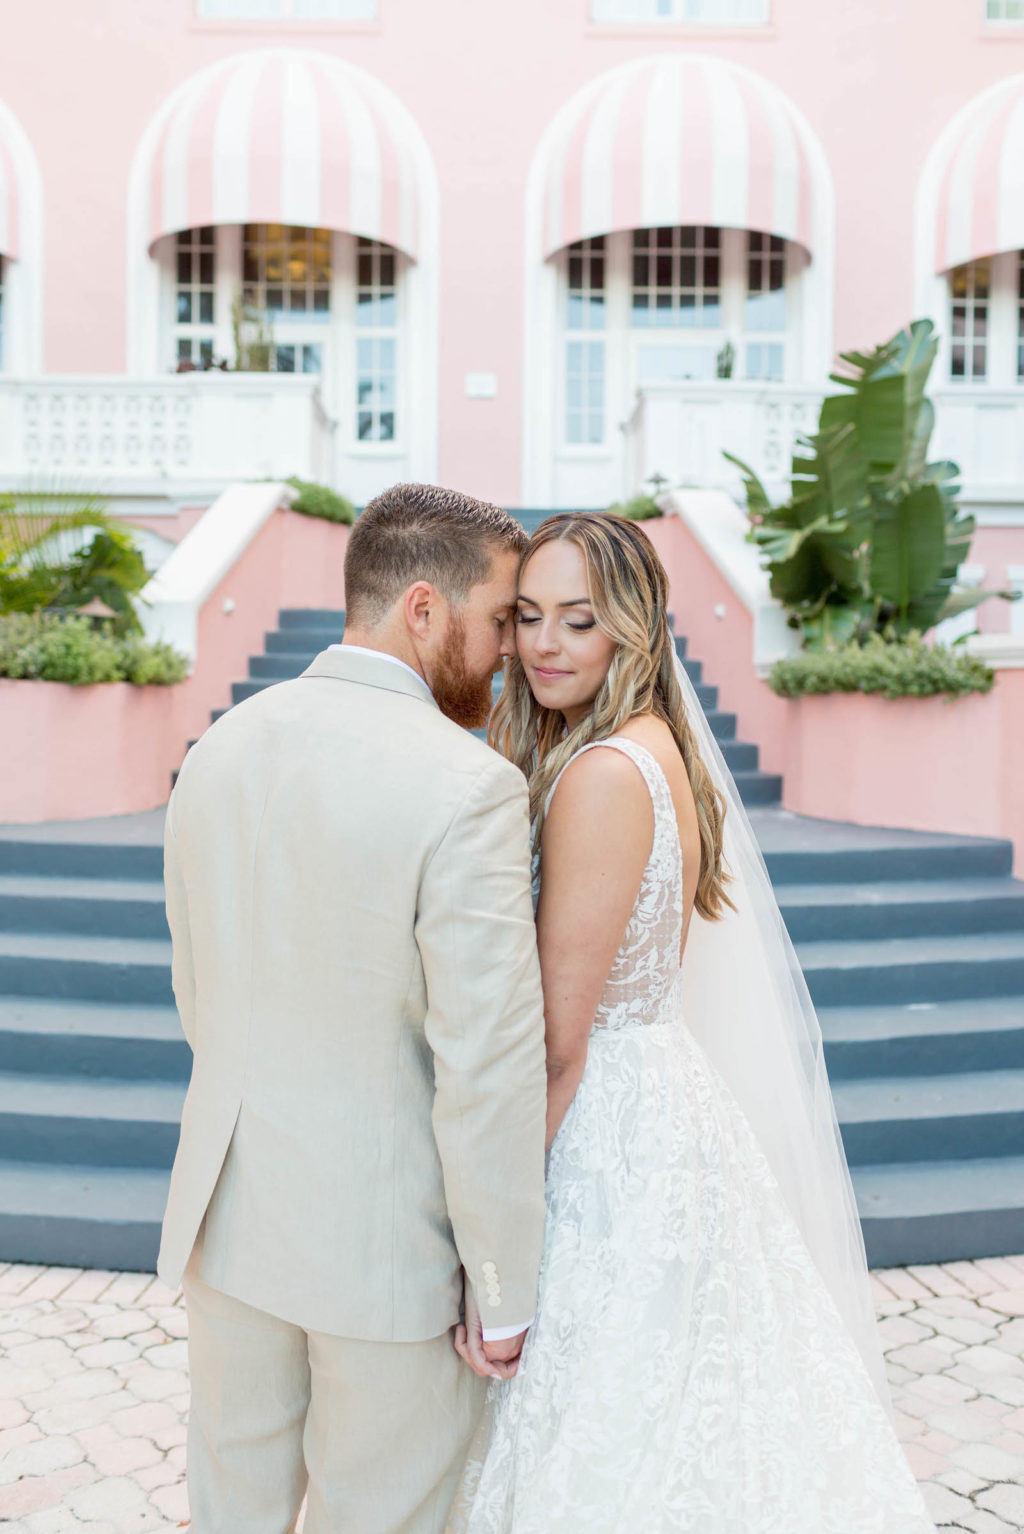 Bride and Groom Outdoor Portrait Staircase at St. Pete Beach Wedding Venue The Don CeSar Pink Palace | Monique Lhuillier Designer Wedding Dress A Line Ballgown Lace Bridal Gown | Groom Wearing Casual Khaki Suite